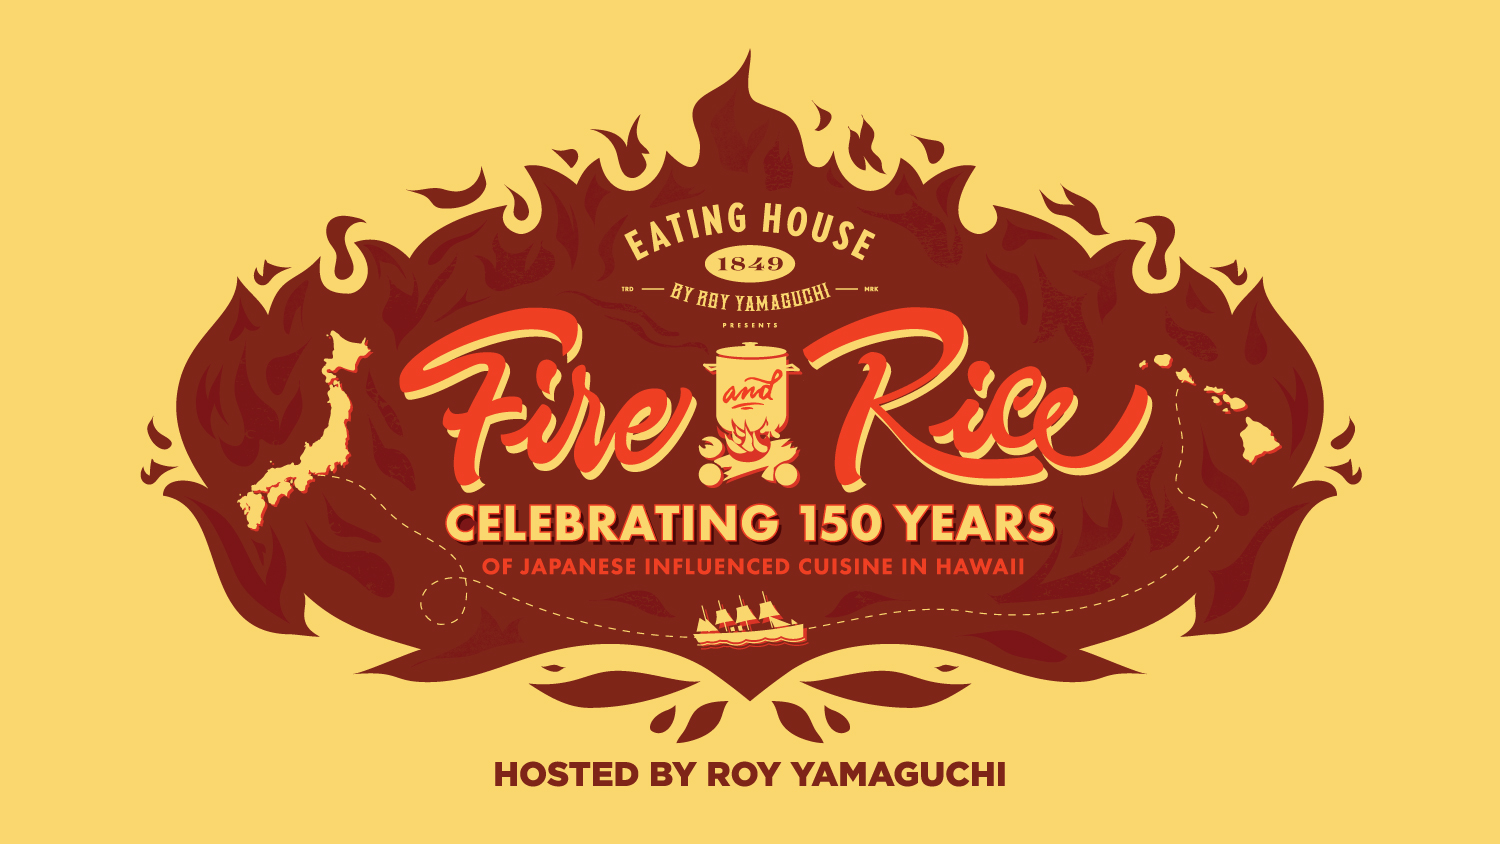 RY_30th_Kapolei-Fire-and-Rice-(series)-web.jpg